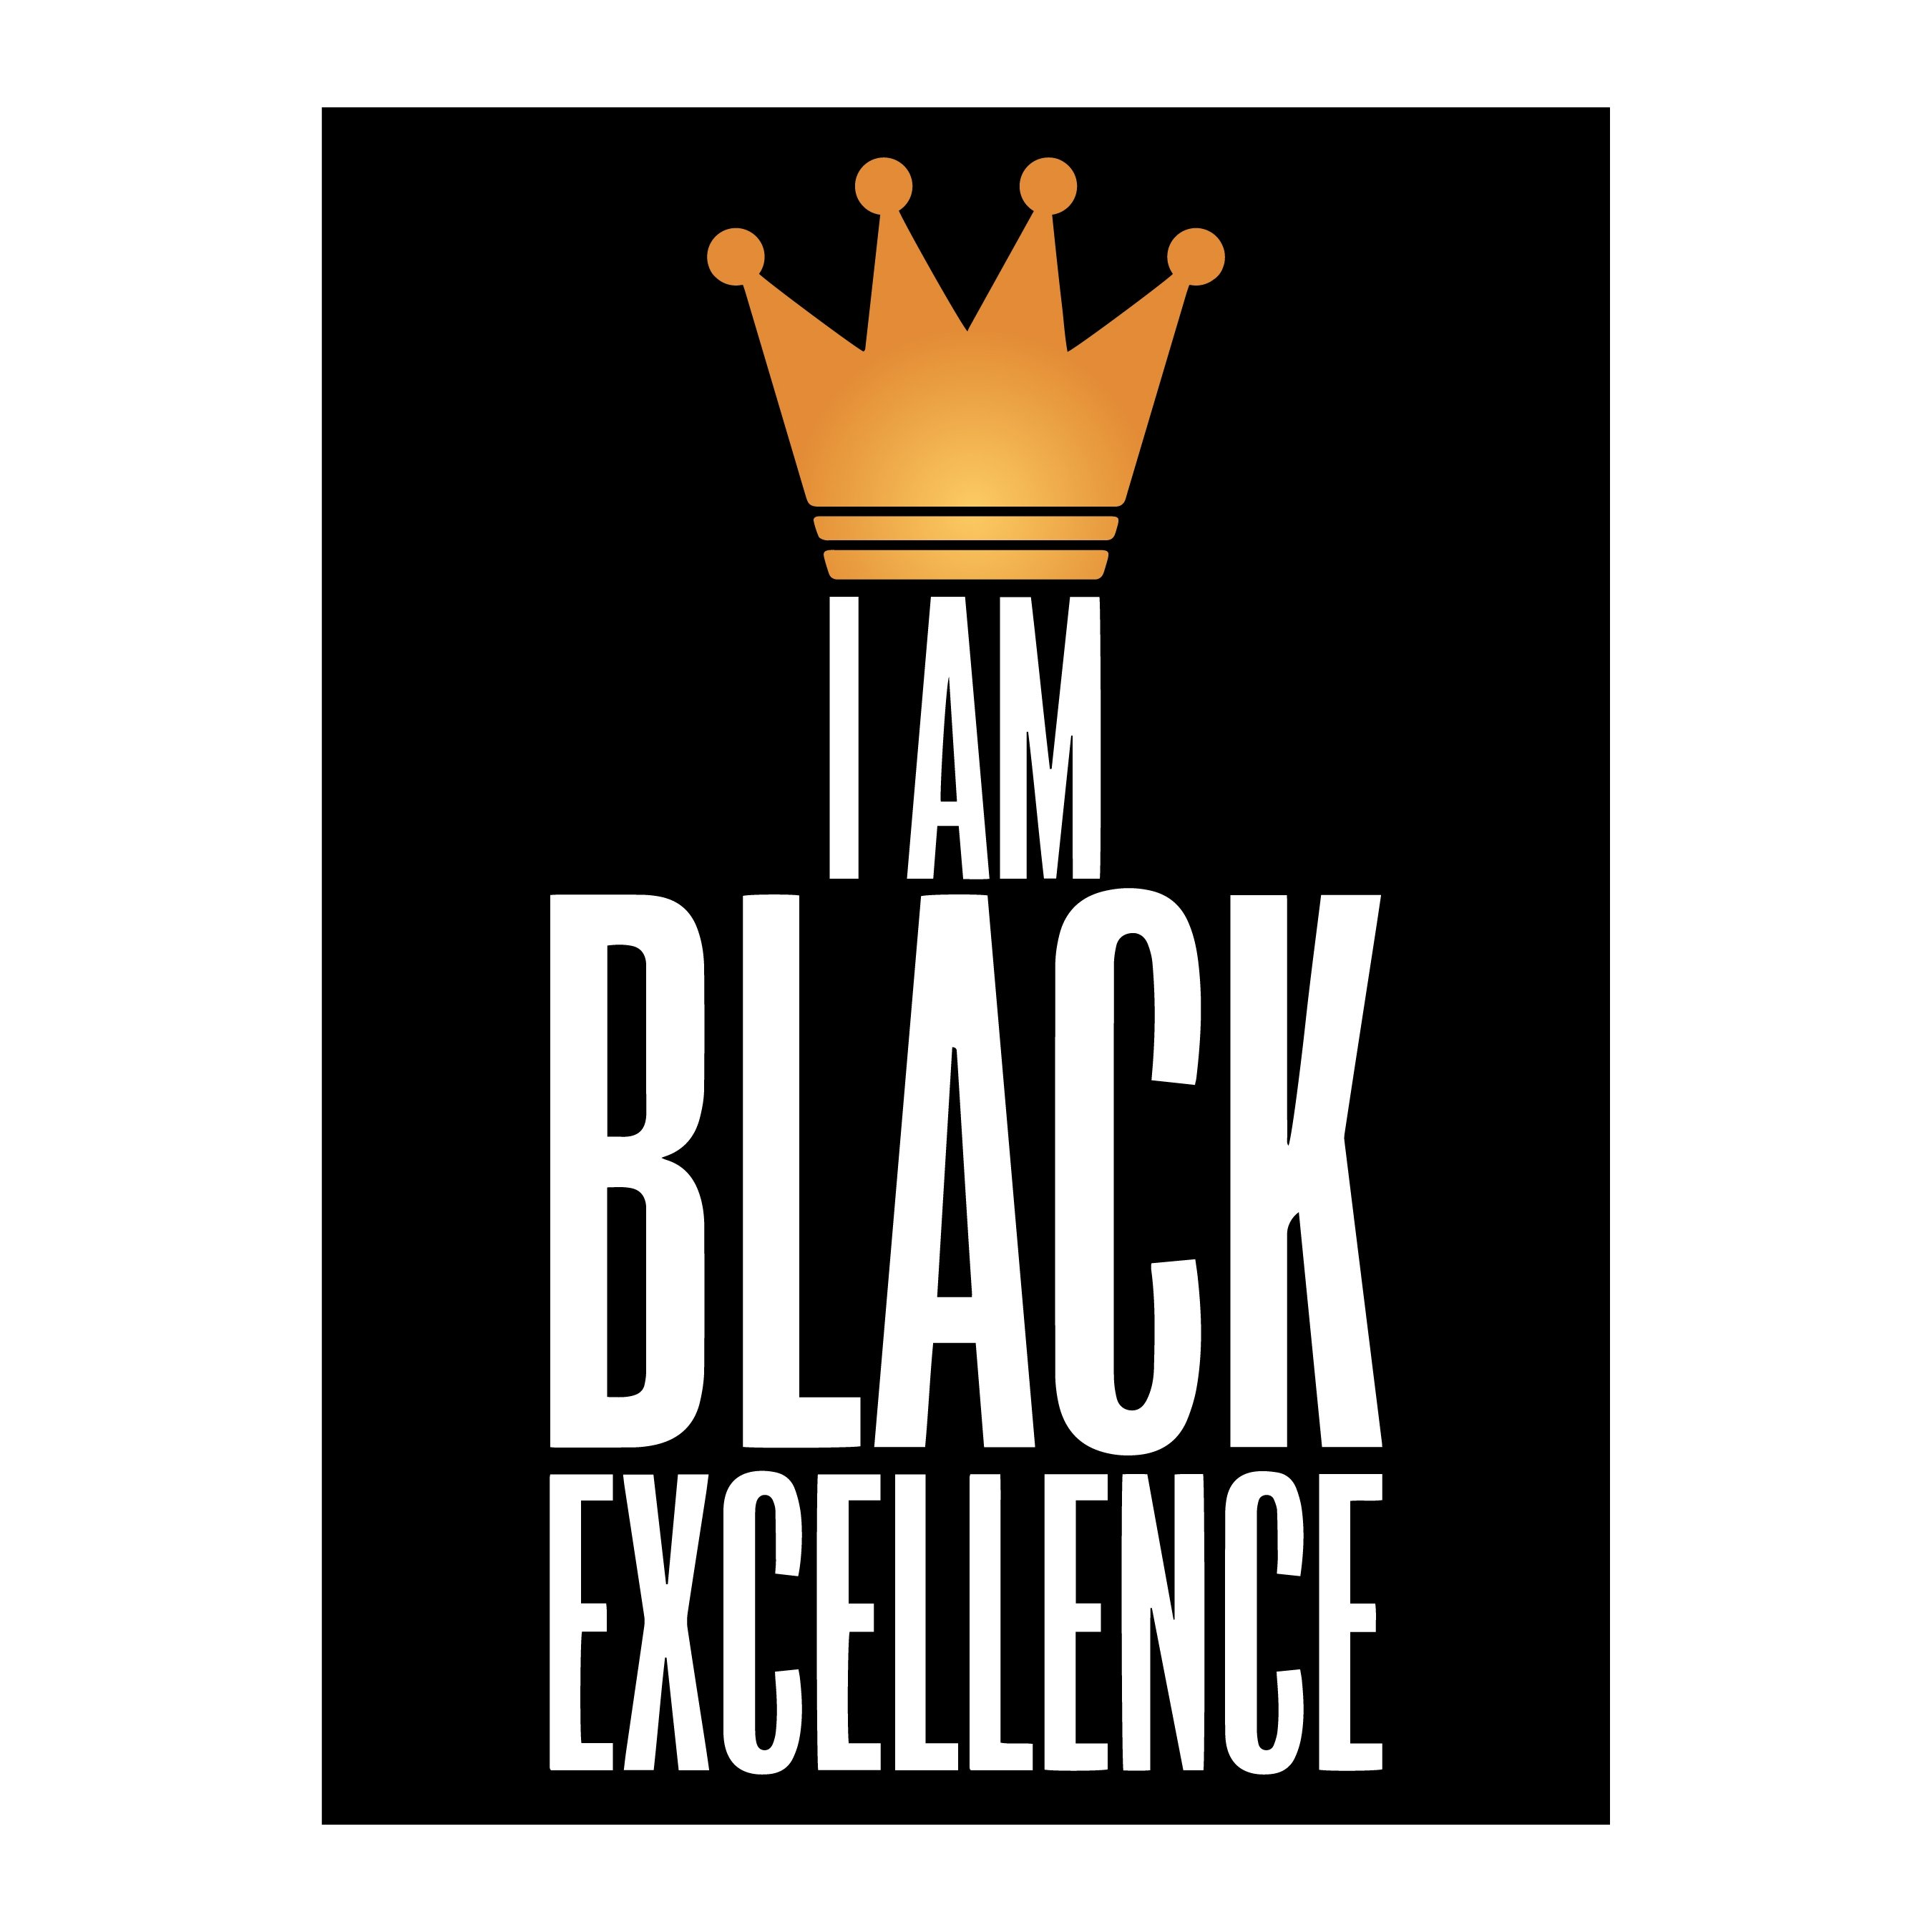 I Am Black Excellence Poster by Sankofa Designs